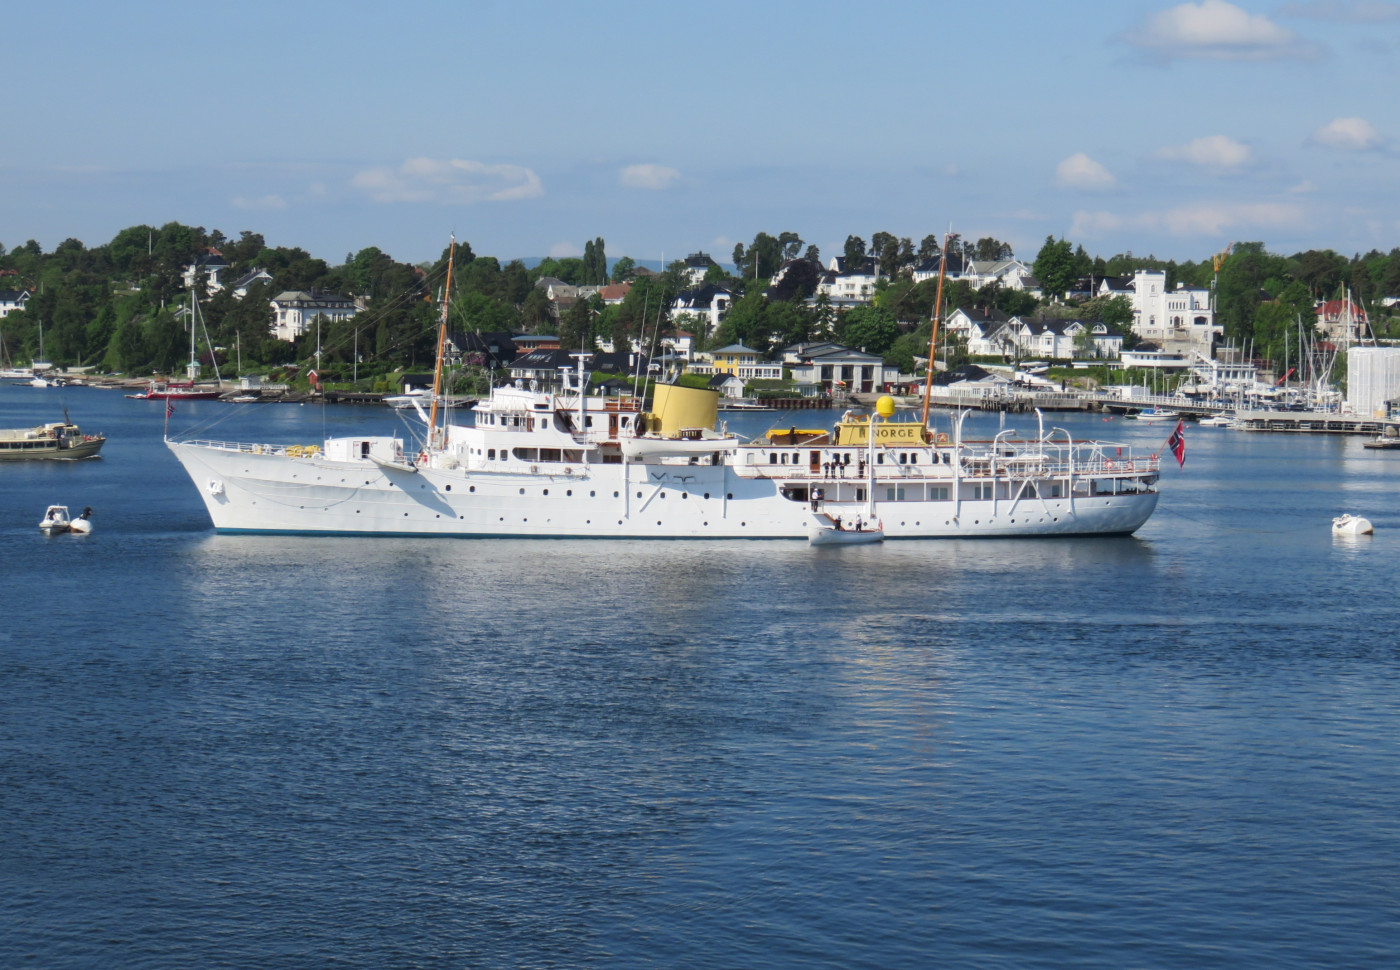 NORGE_5574